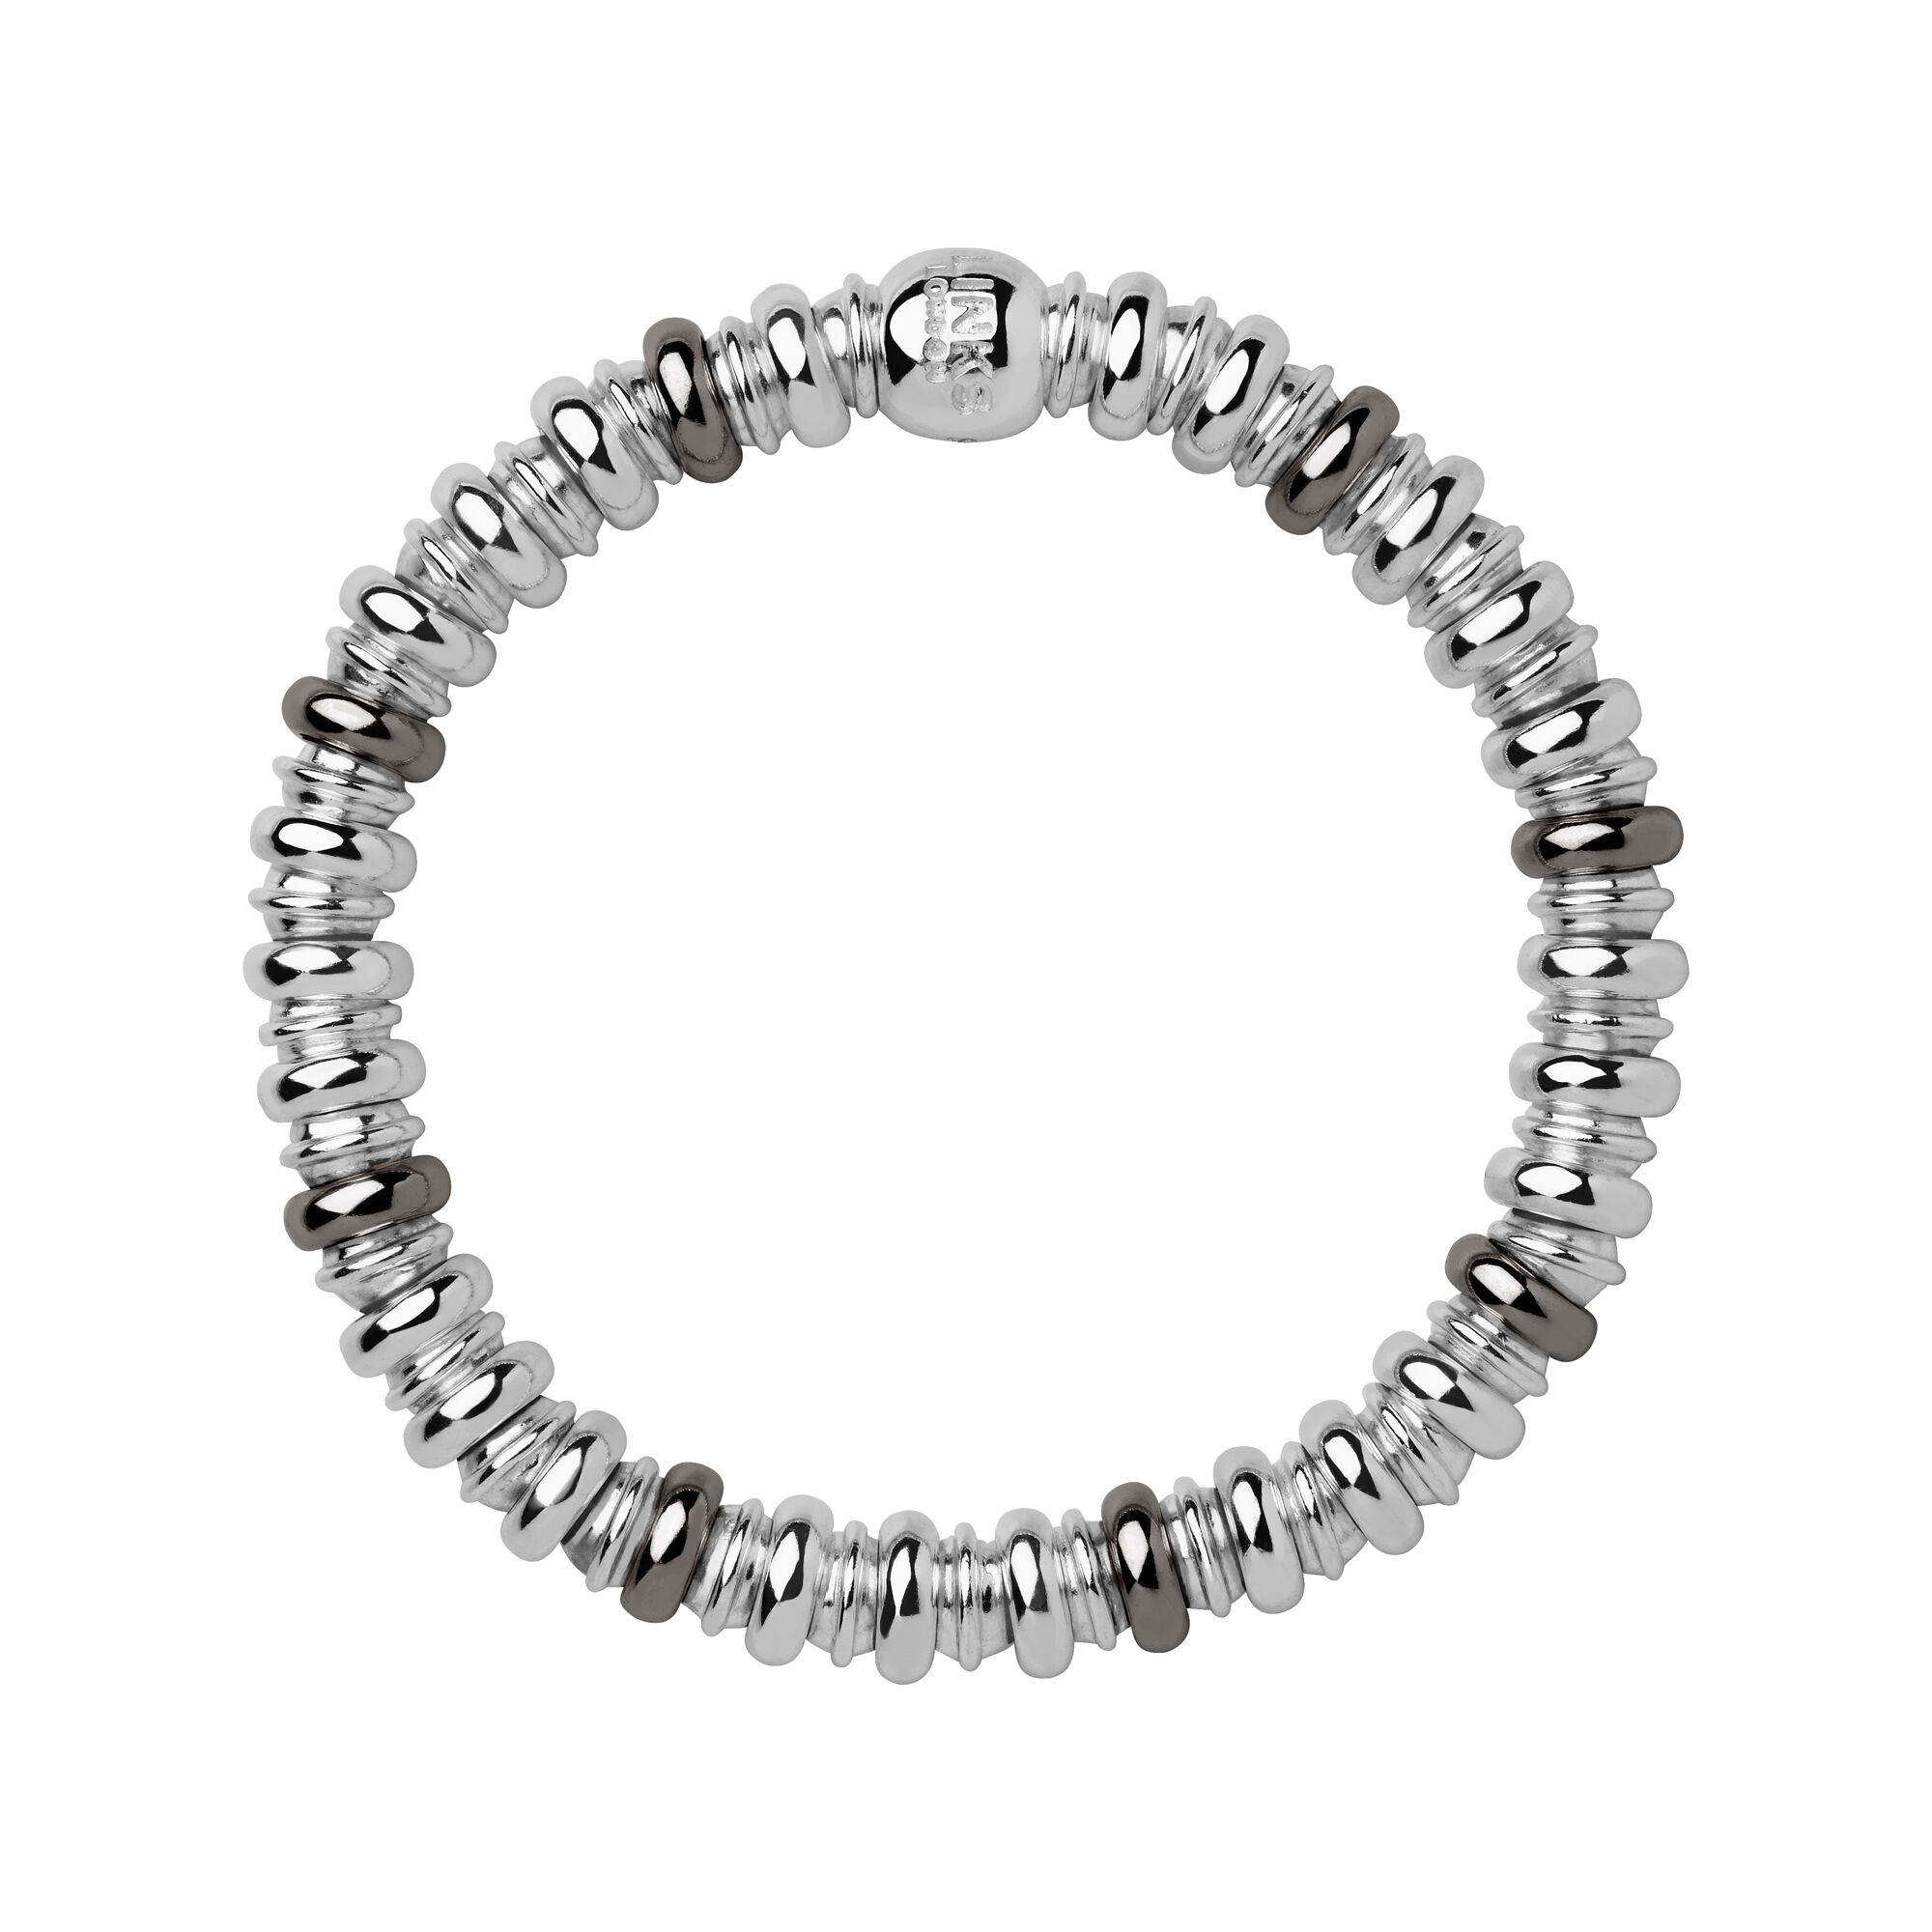 bracelets cross products ugleam rhodium bracelet thick link